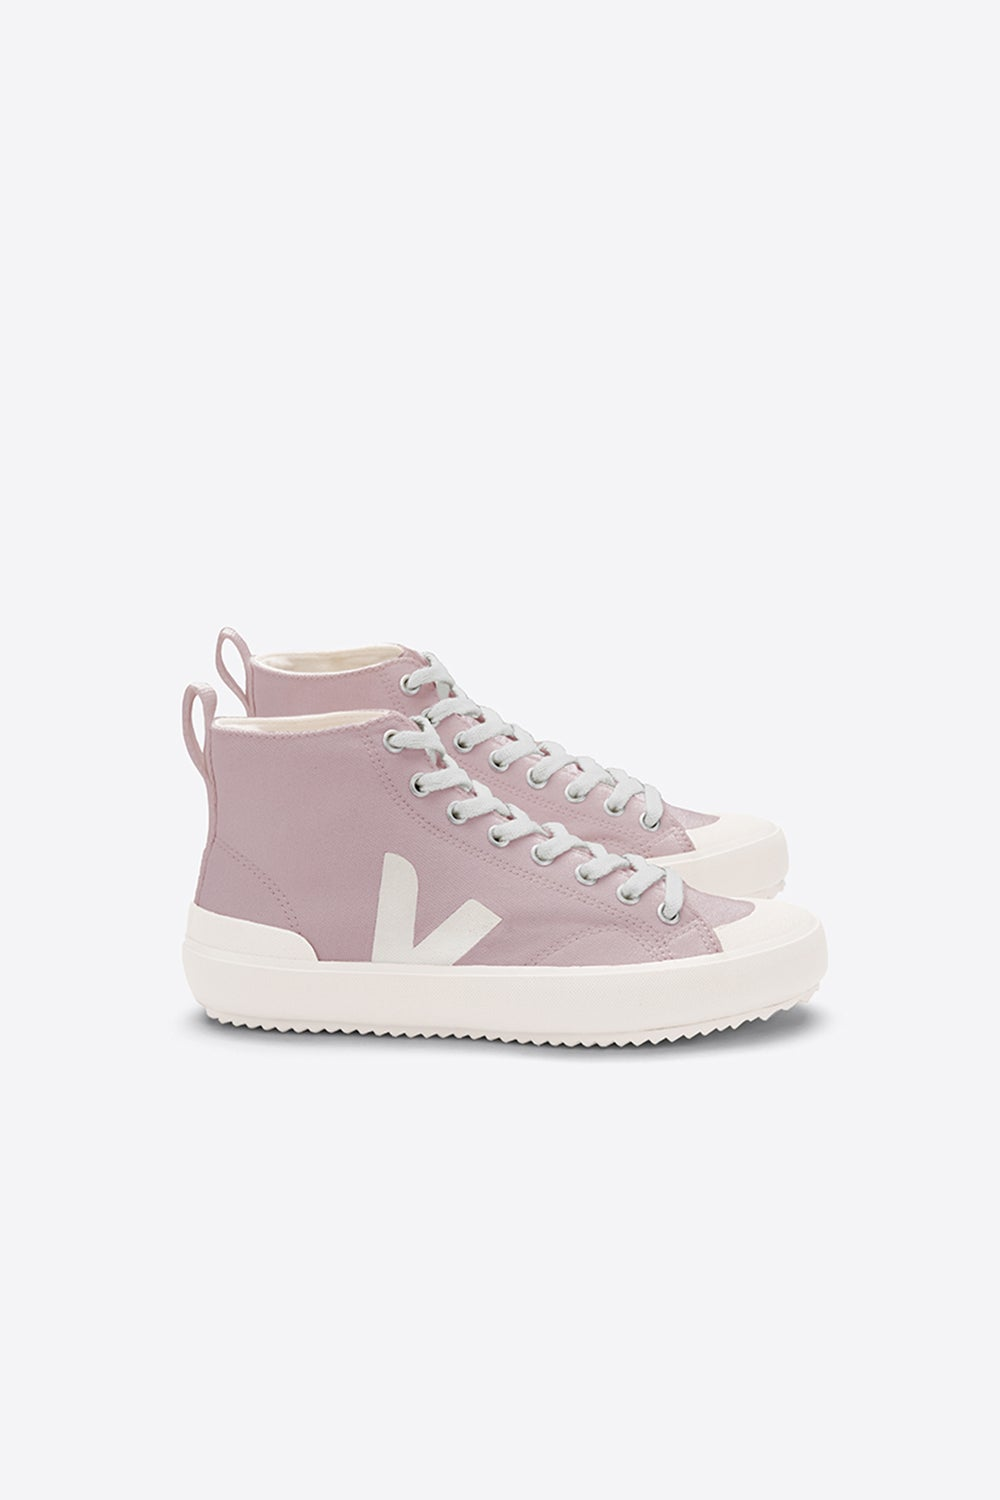 Veja Nova High Top Babe/Pierre